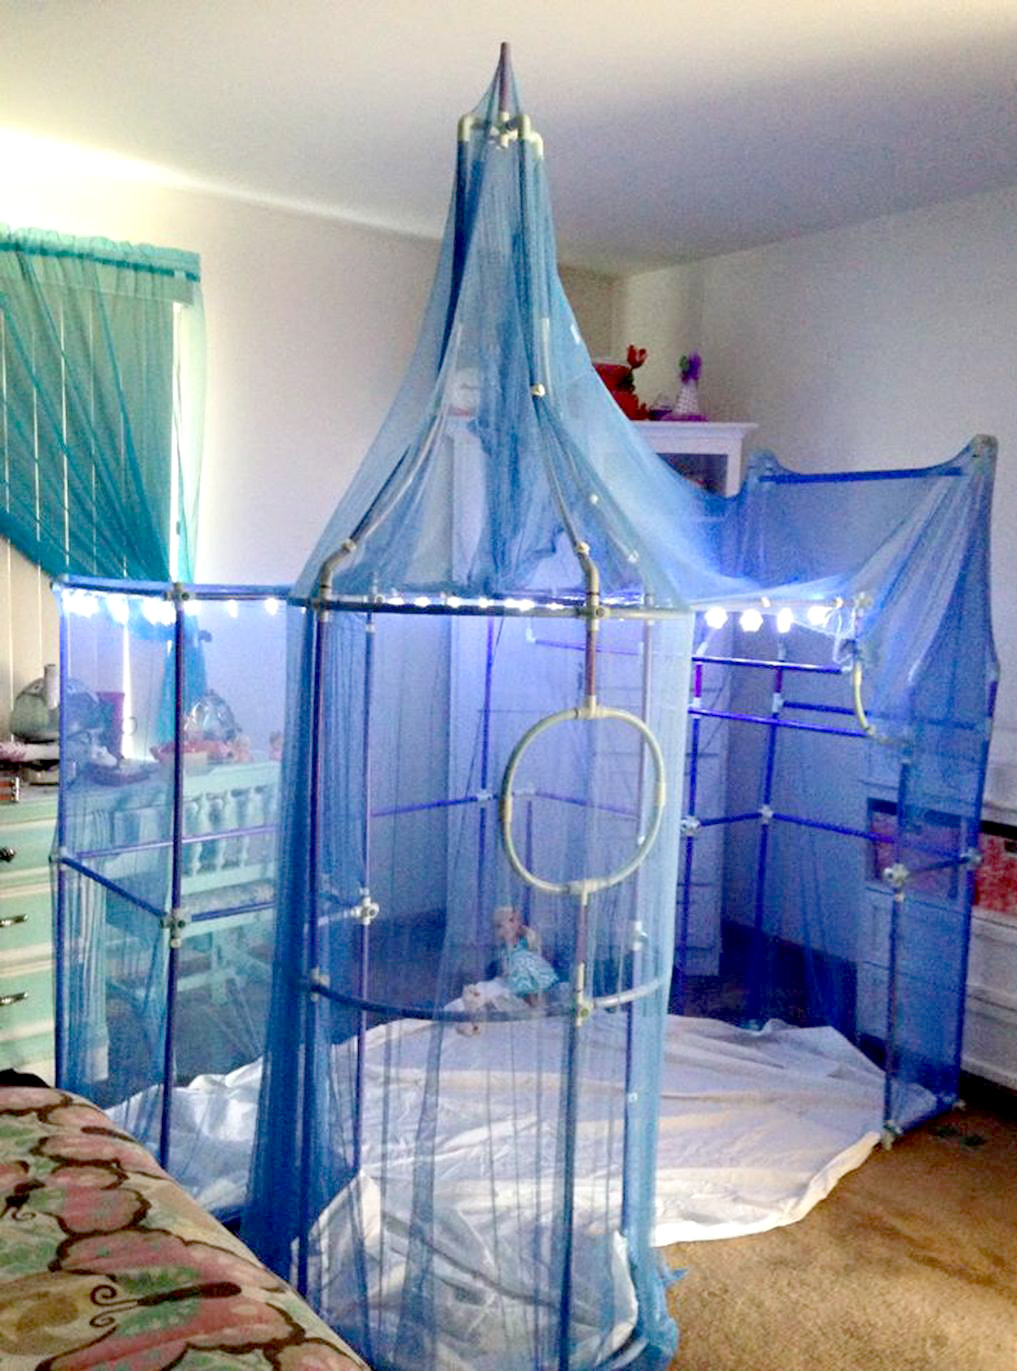 tulle-netting-cheese-cloth-decorating-ideas-1